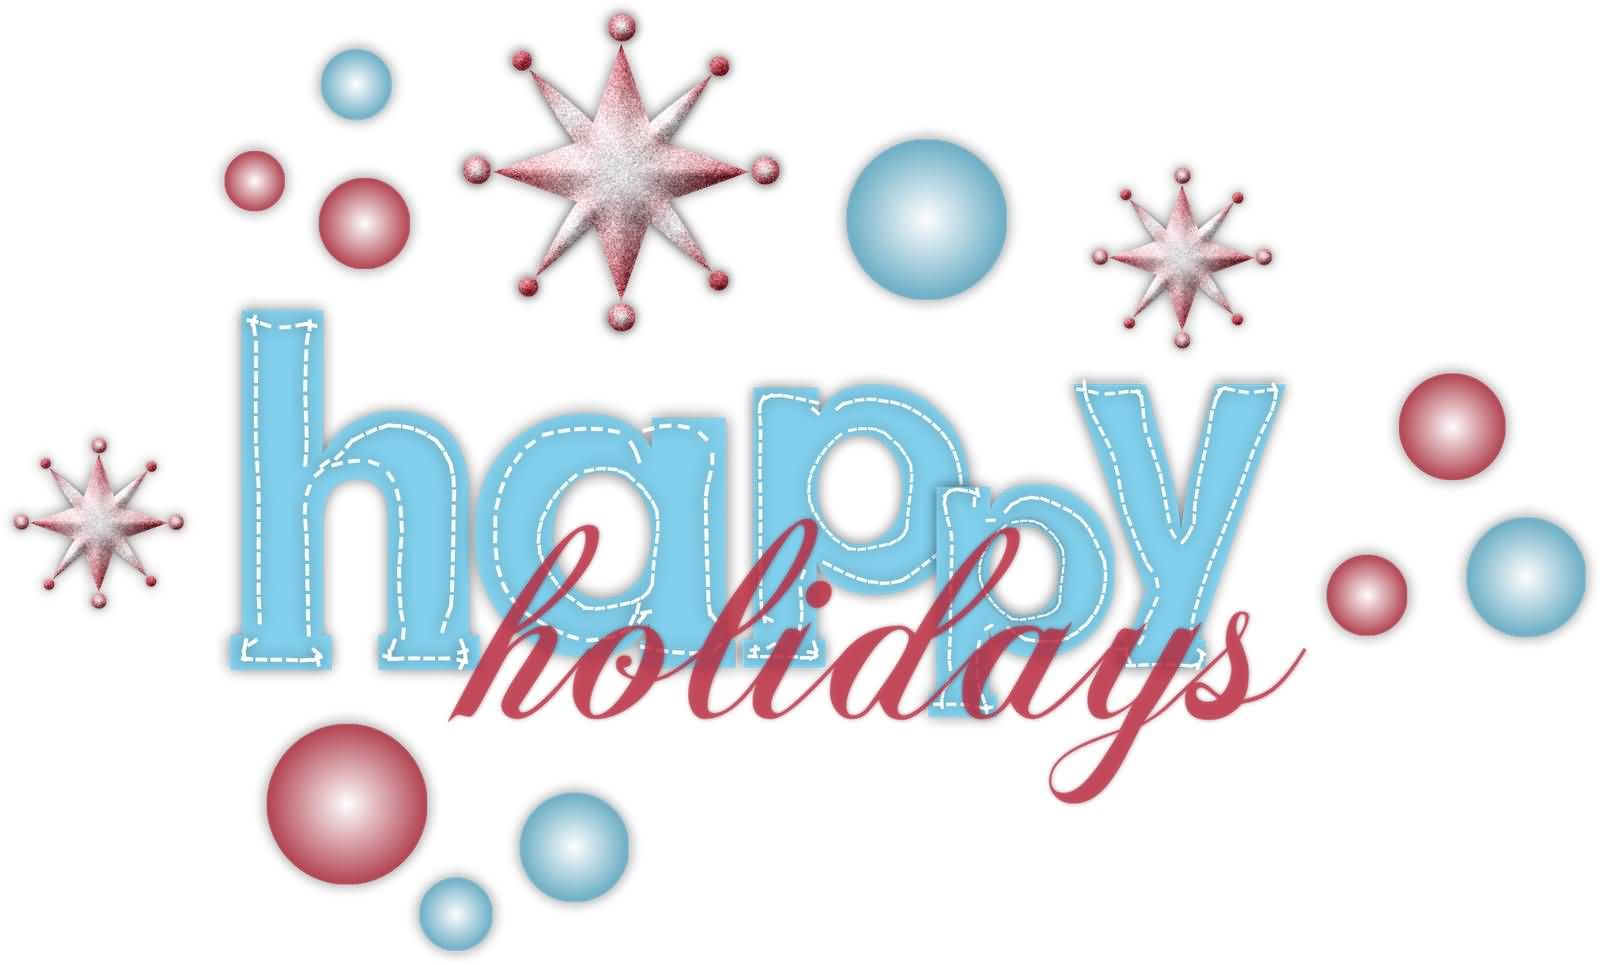 Happy holidays pictures clipart png library library 50 Most Amazing Happy Holidays Wish Pictures And Photos png library library